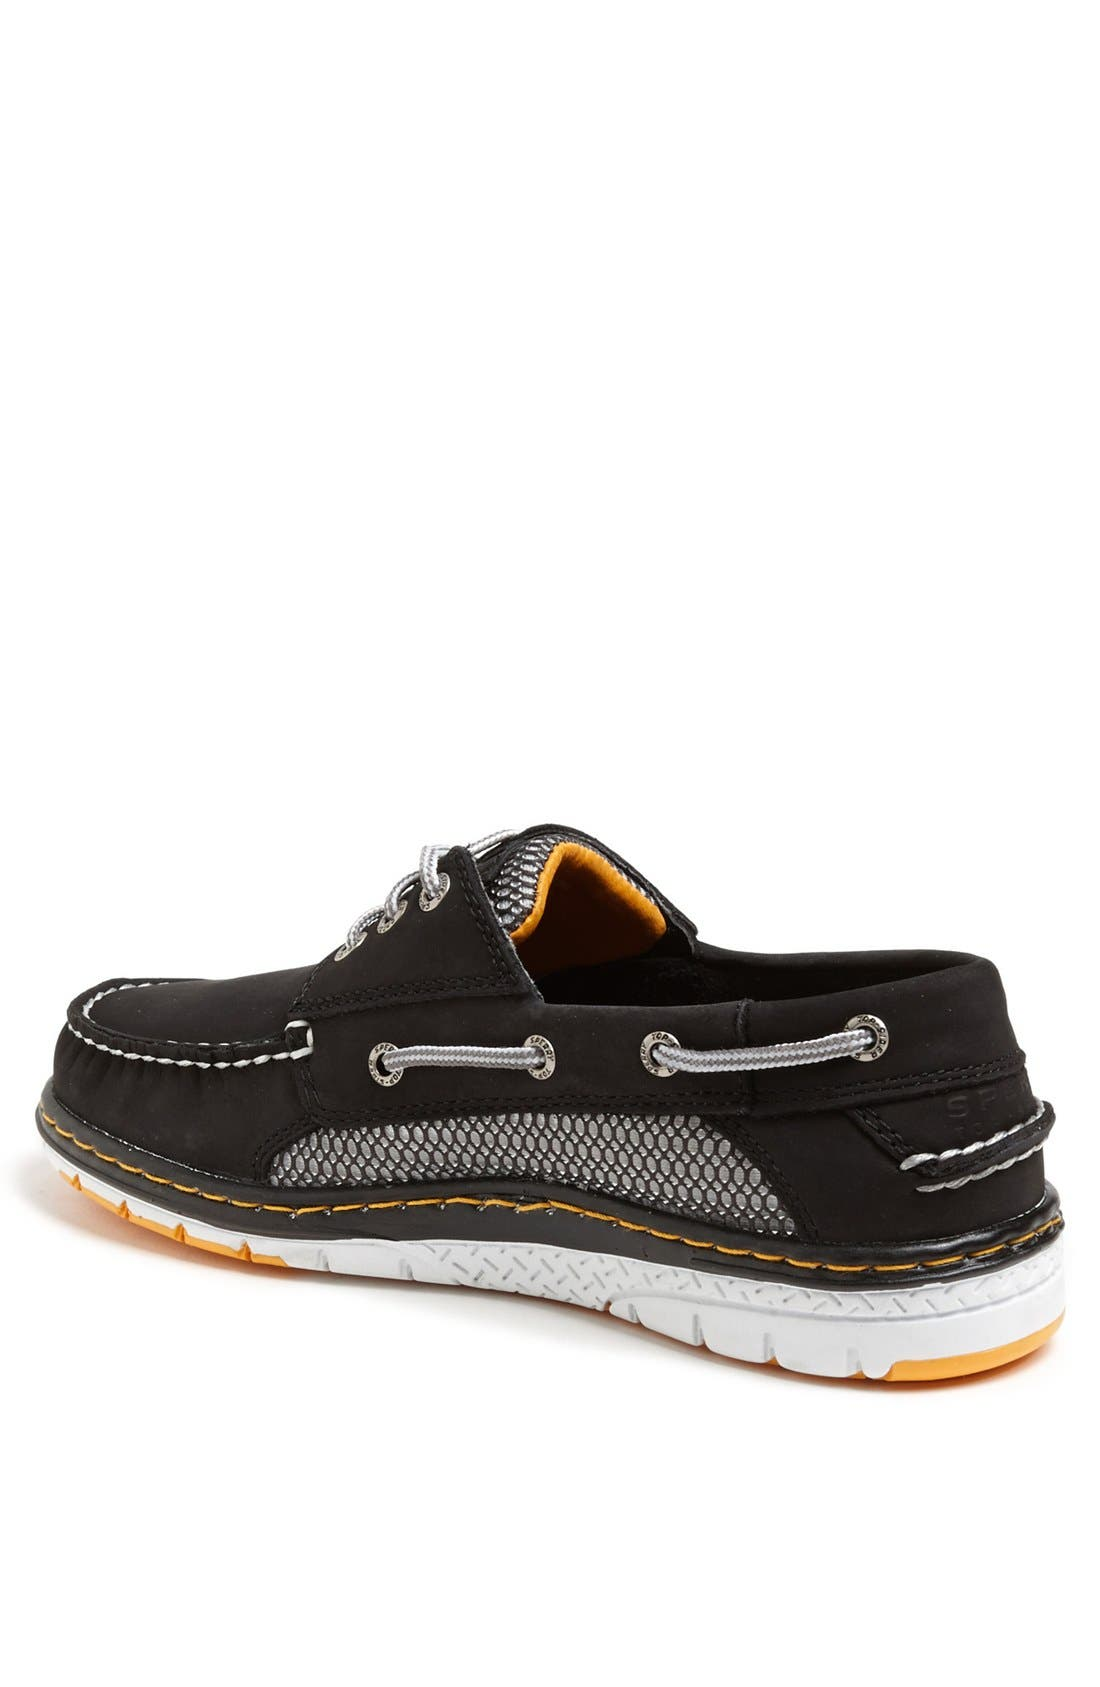 'Billfish Ultralite' Boat Shoe,                             Alternate thumbnail 61, color,